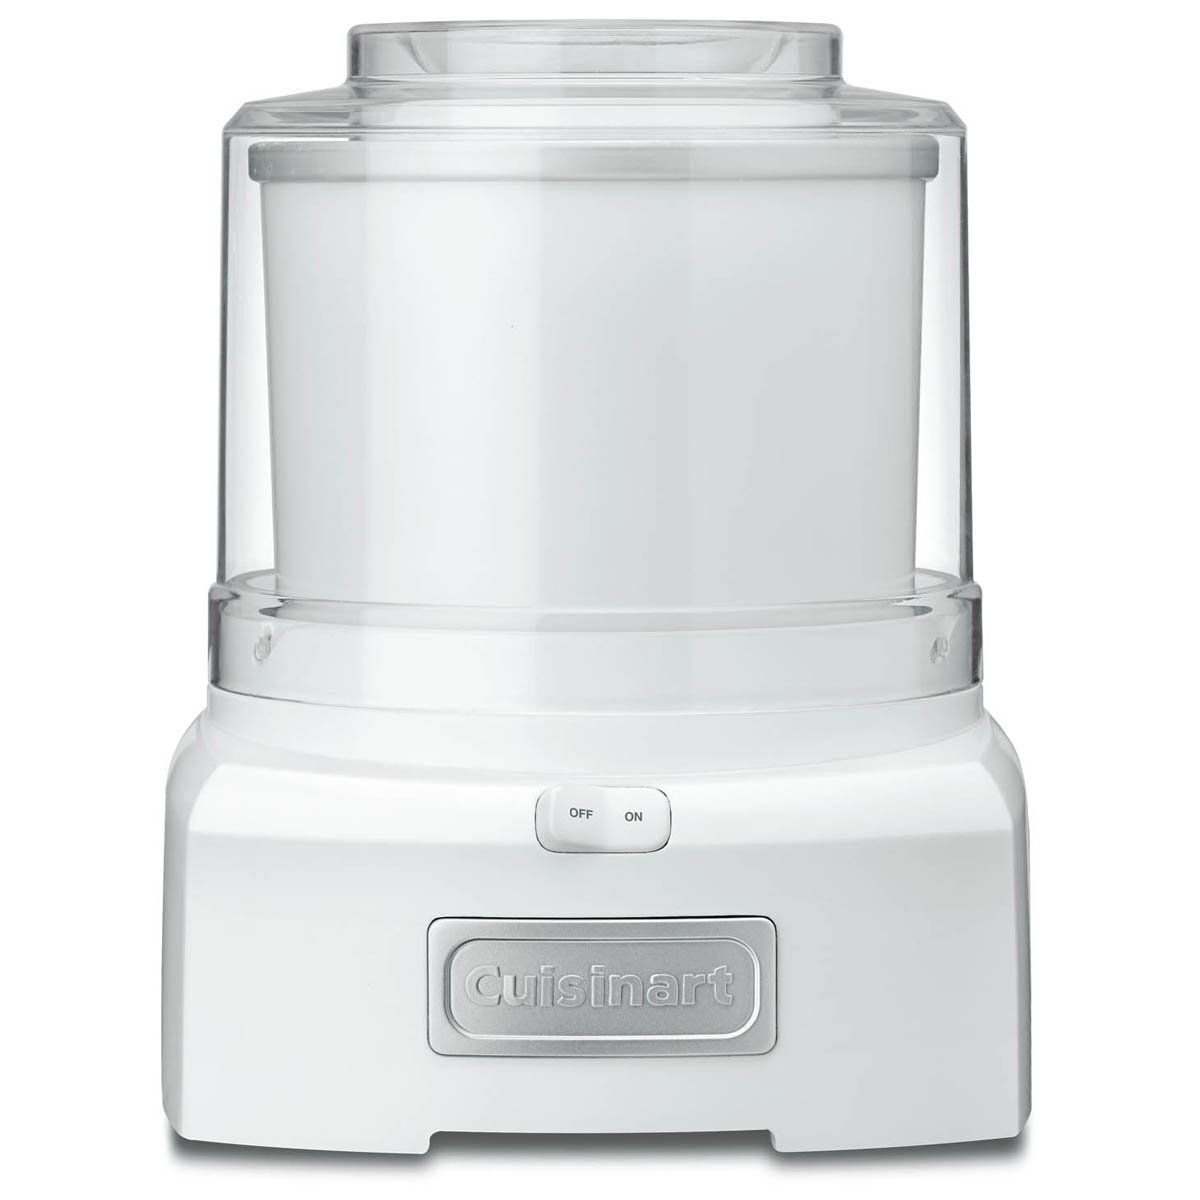 Cuisinart ICE-21 Ice Cream Maker